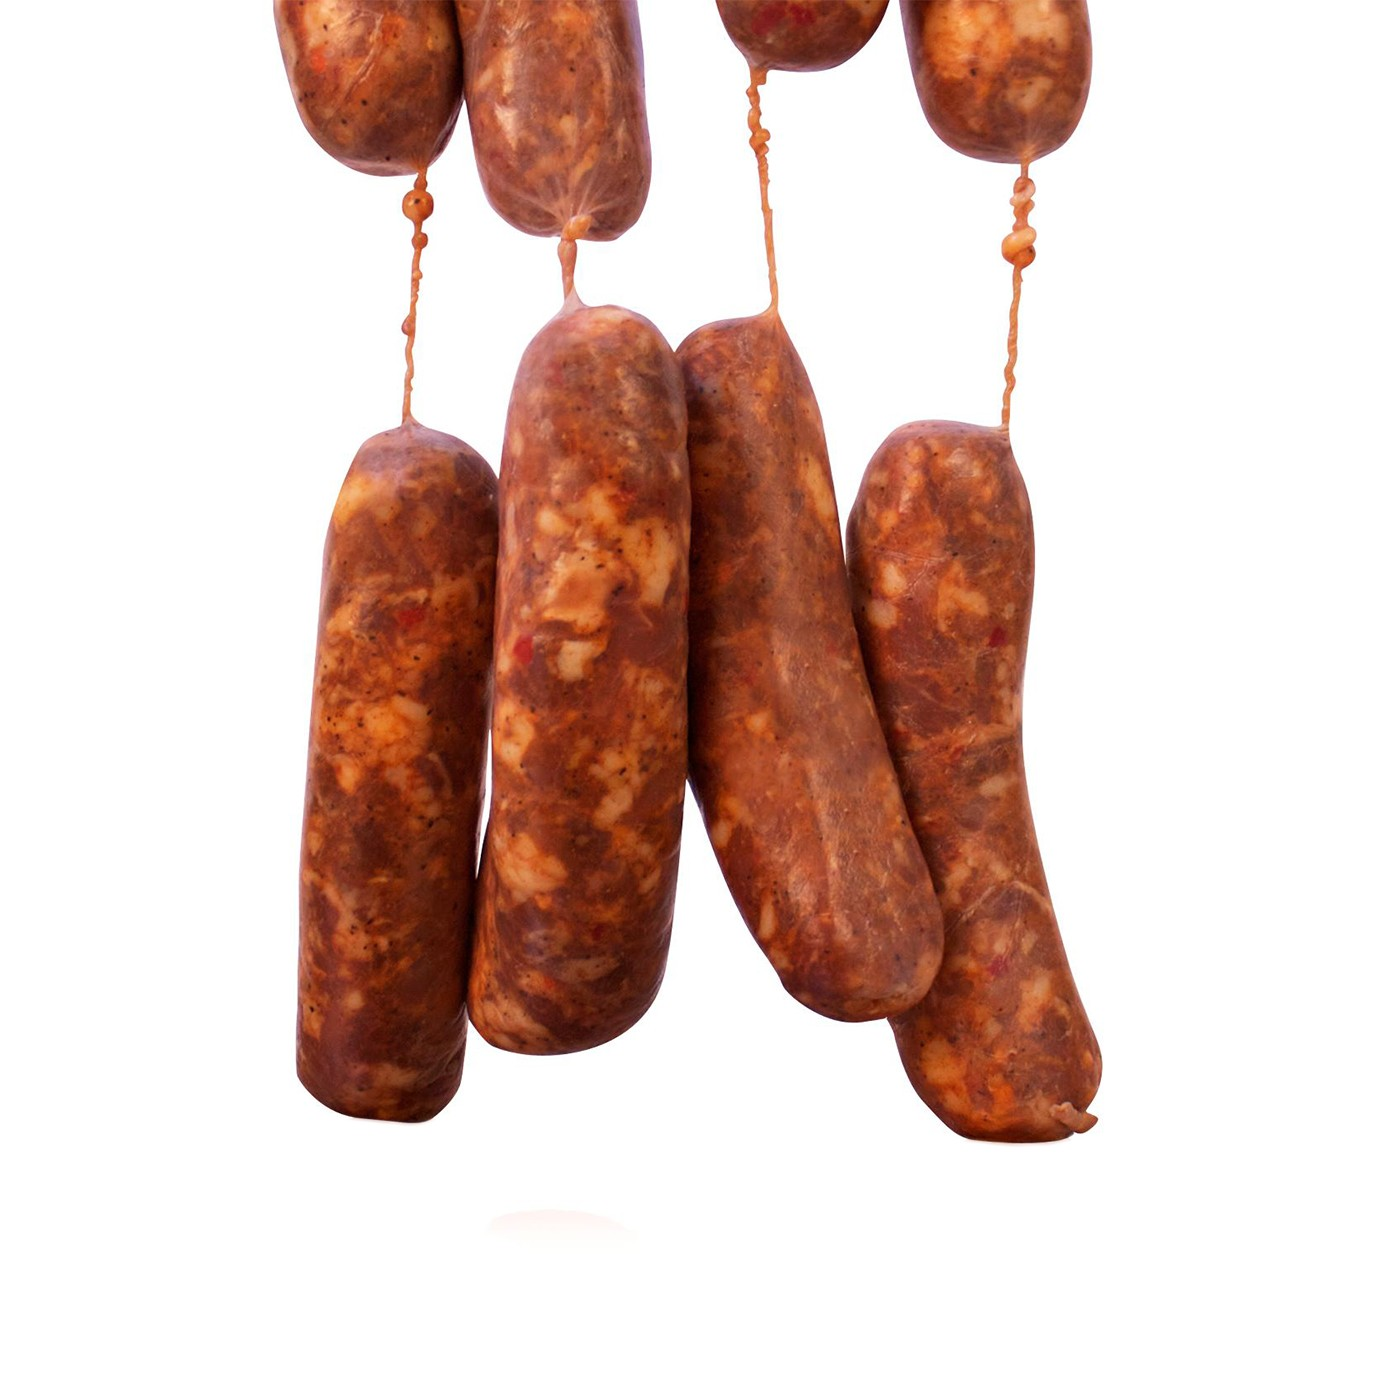 Hot Sausage 3-lb Package